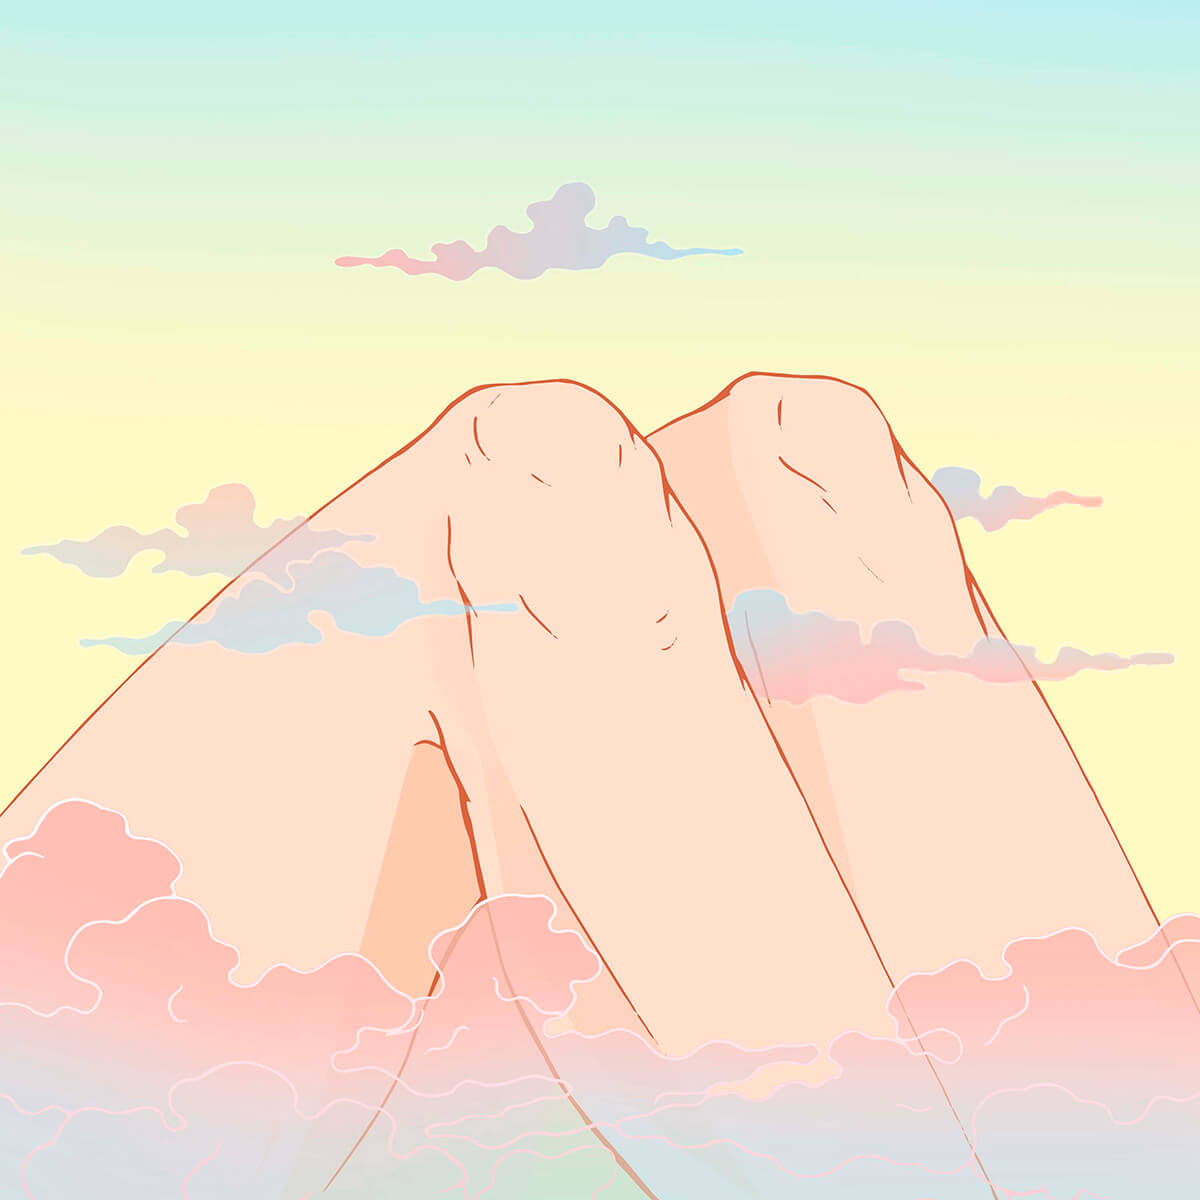 Mountains Knee illustration